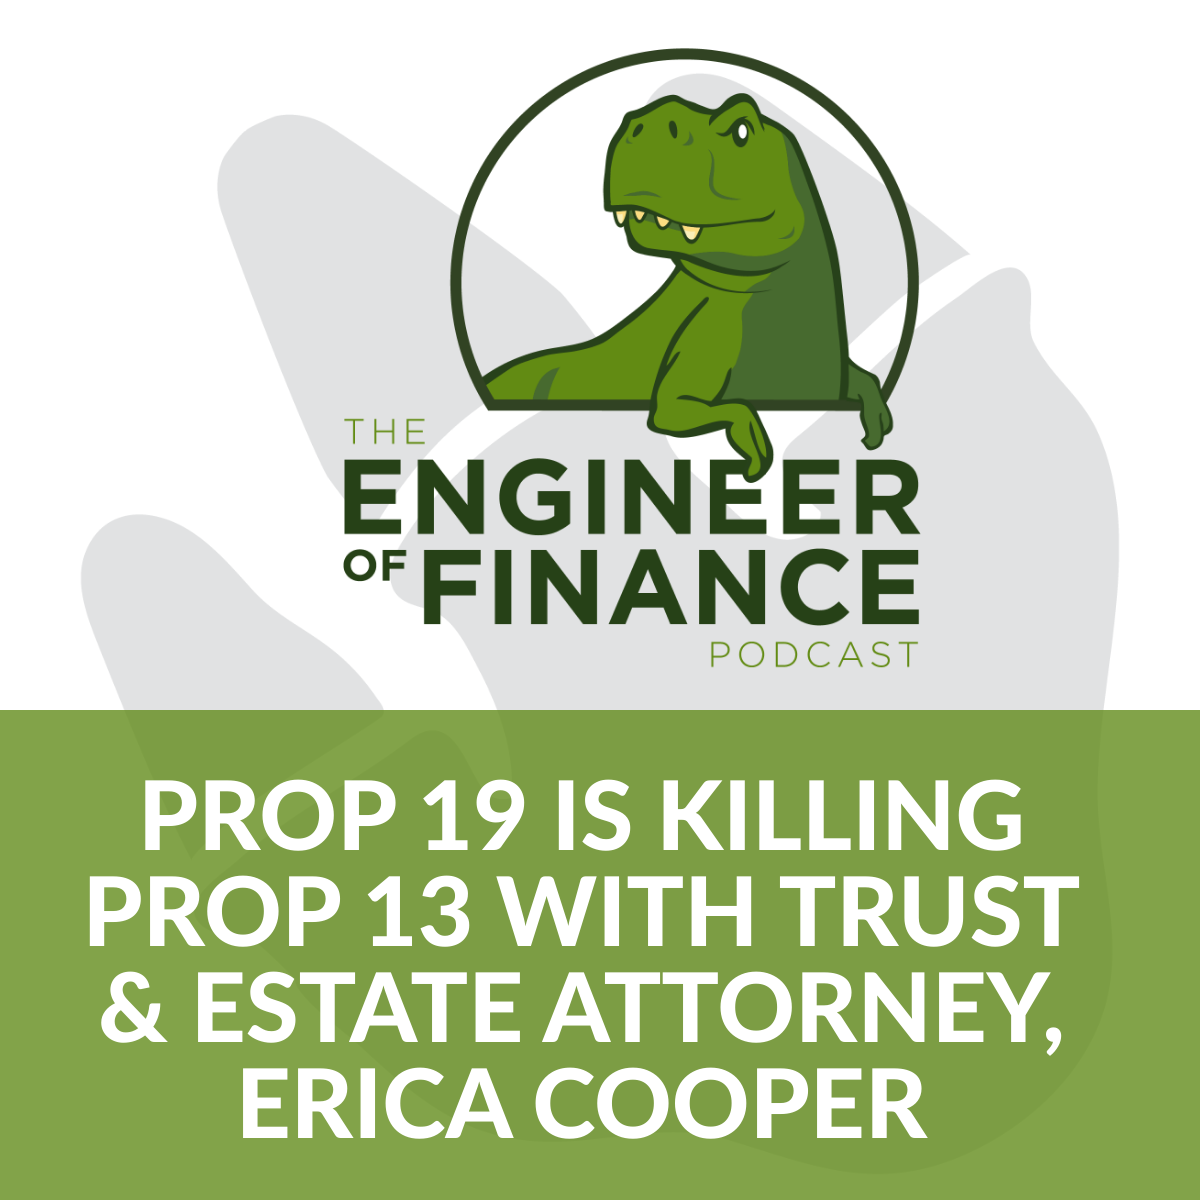 PROP 19 IS KILLING PROP 13 WITH TRUST & ESTATE ATTORNEY, ERICA COOPER – Episode 155